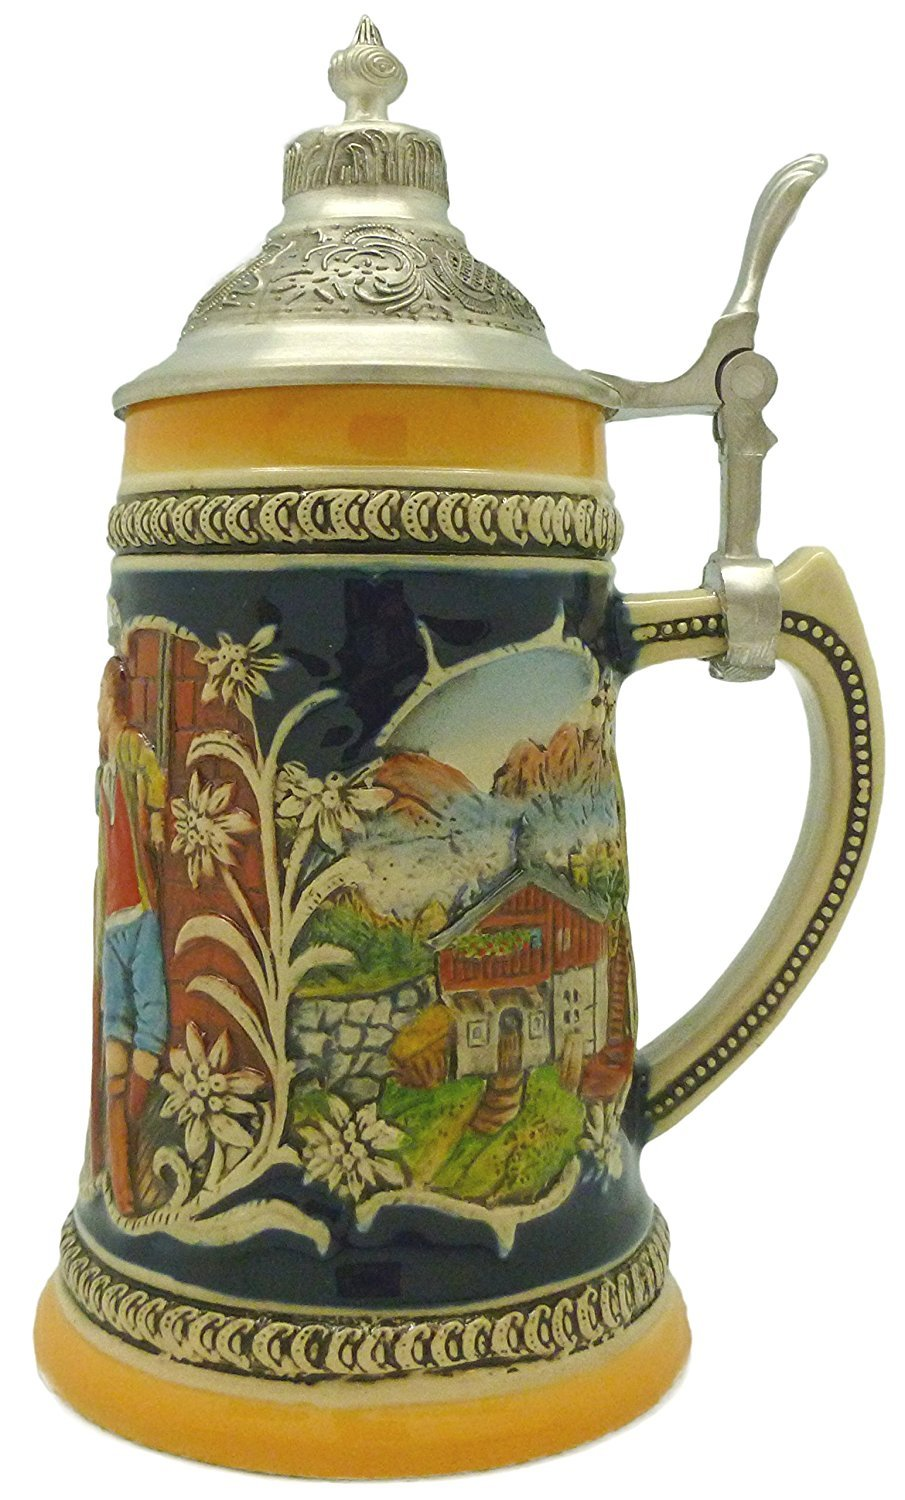 Engraved Beer Stein Alpine Pub Metal Lid Essence of Europe Gifts S4023